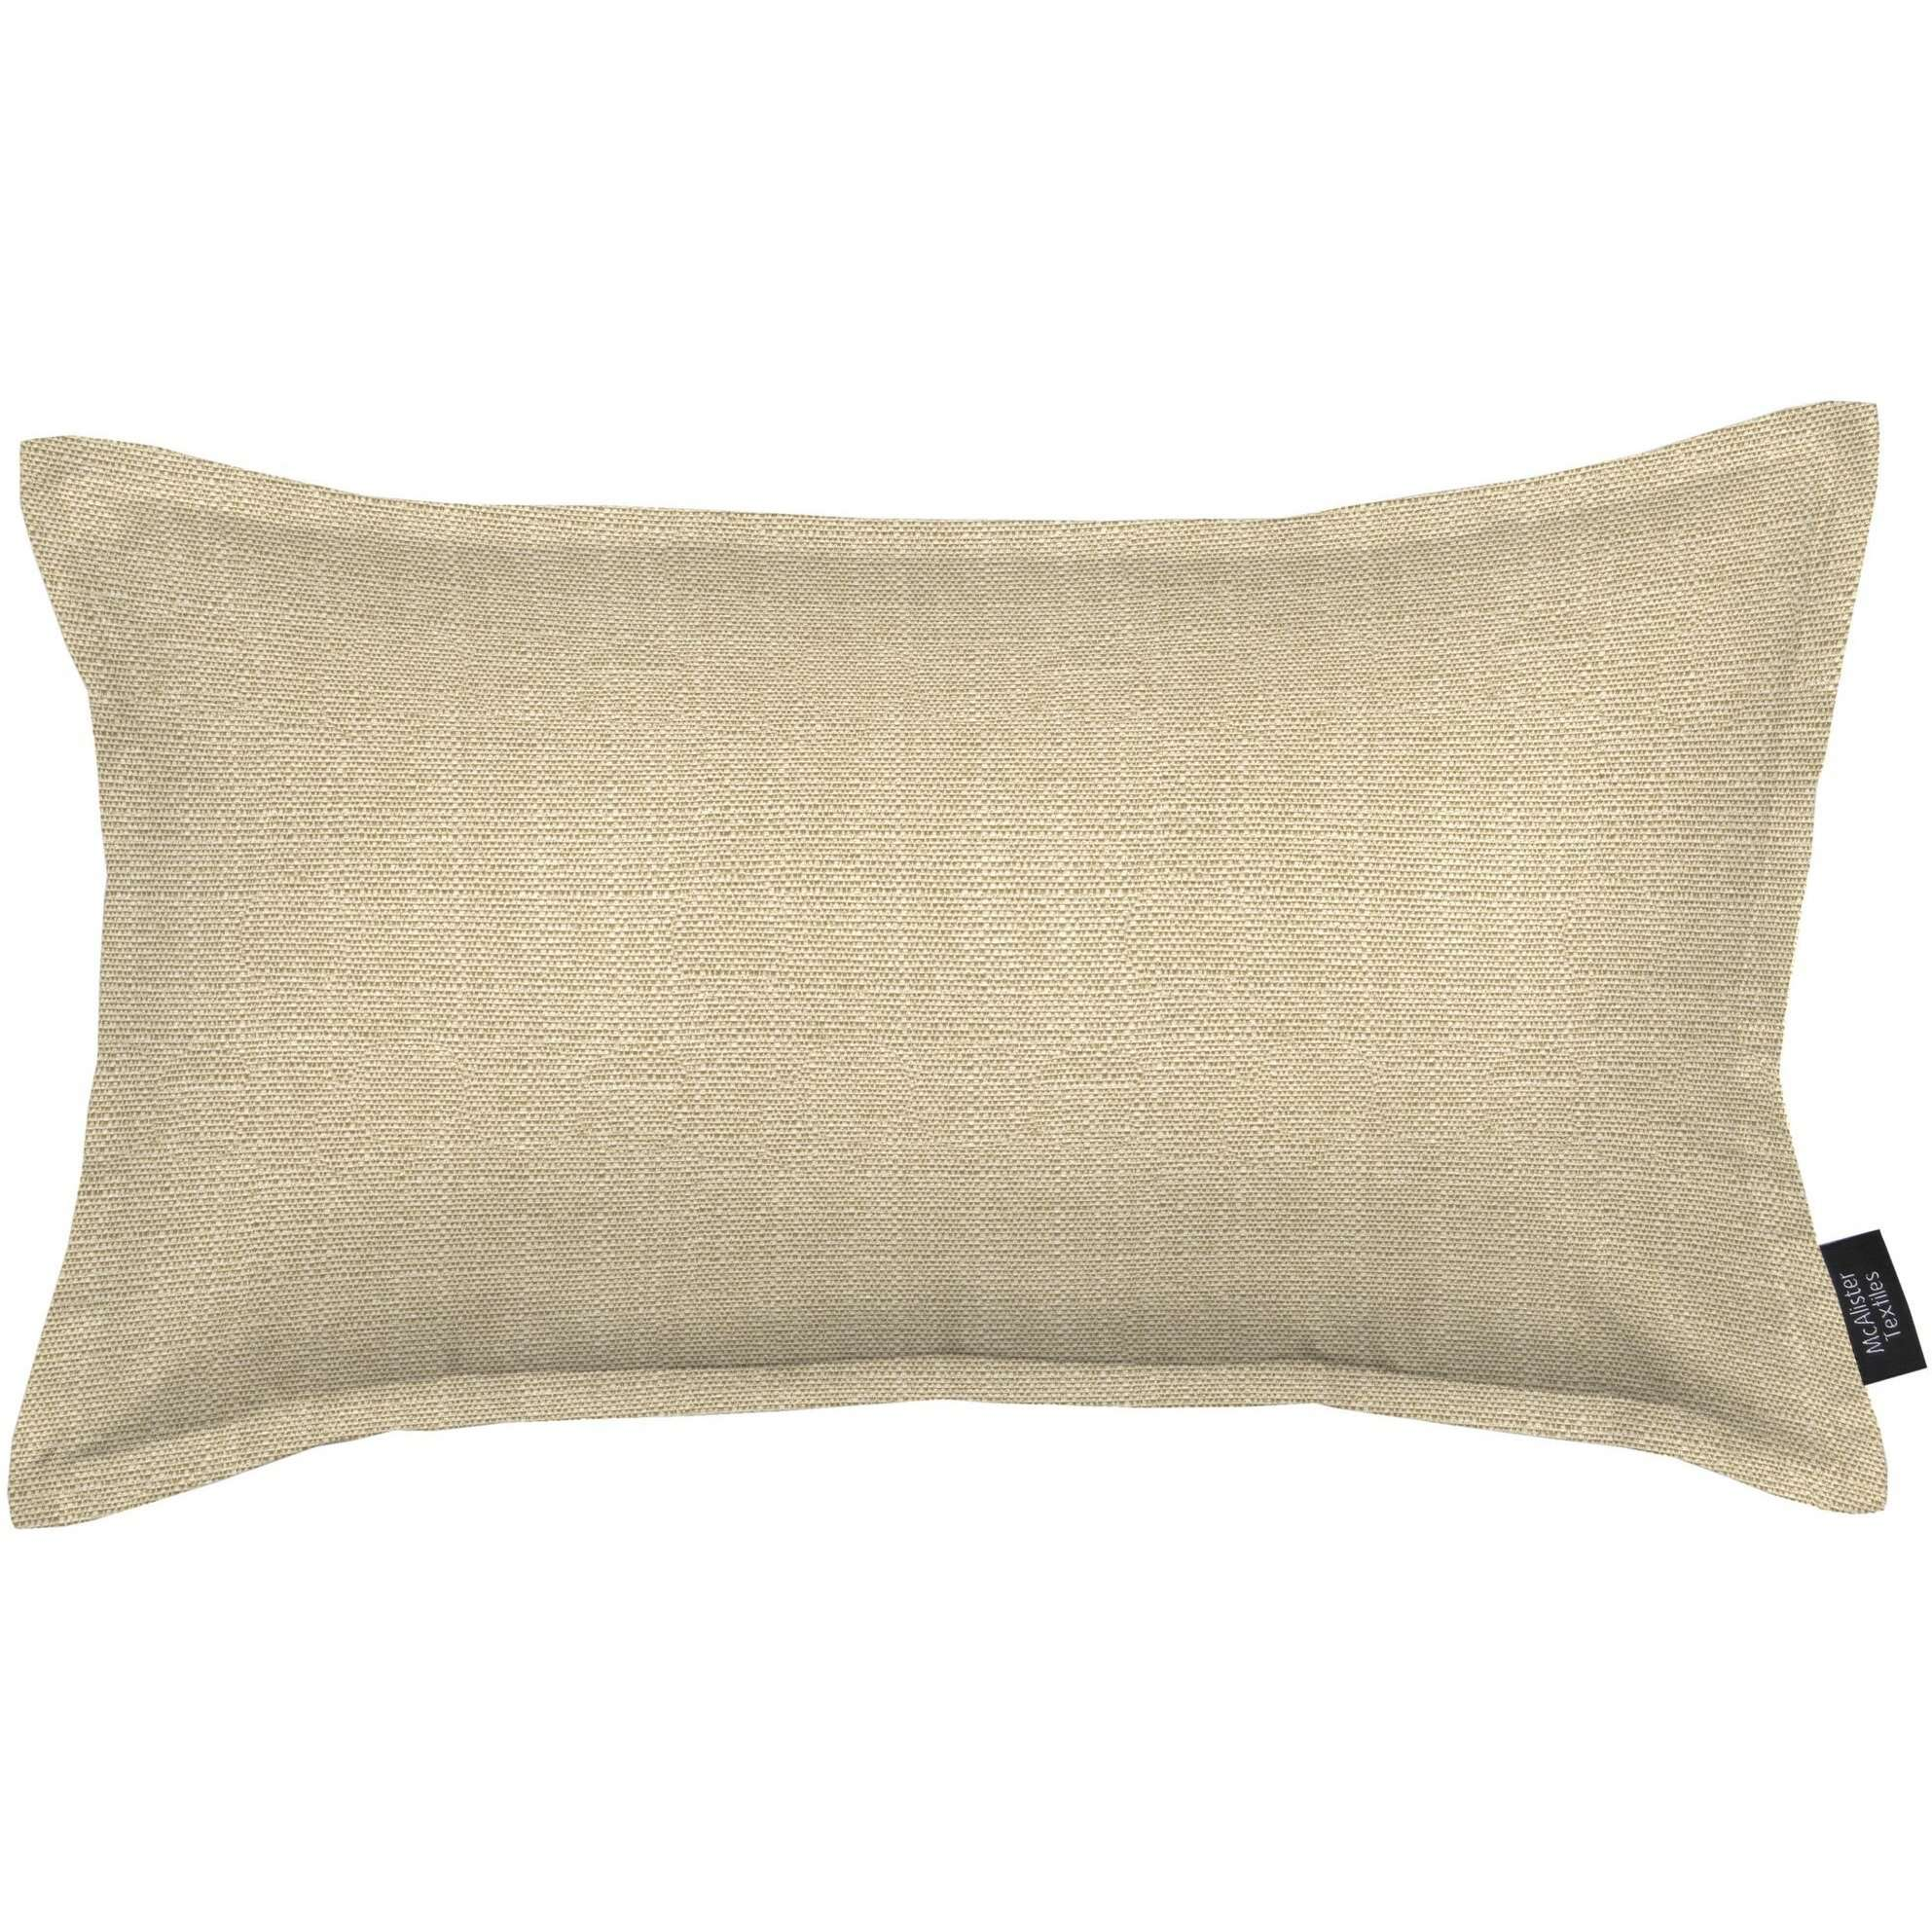 McAlister Textiles Savannah Beige Grey Cushion Cushions and Covers Cover Only 50cm x 30cm